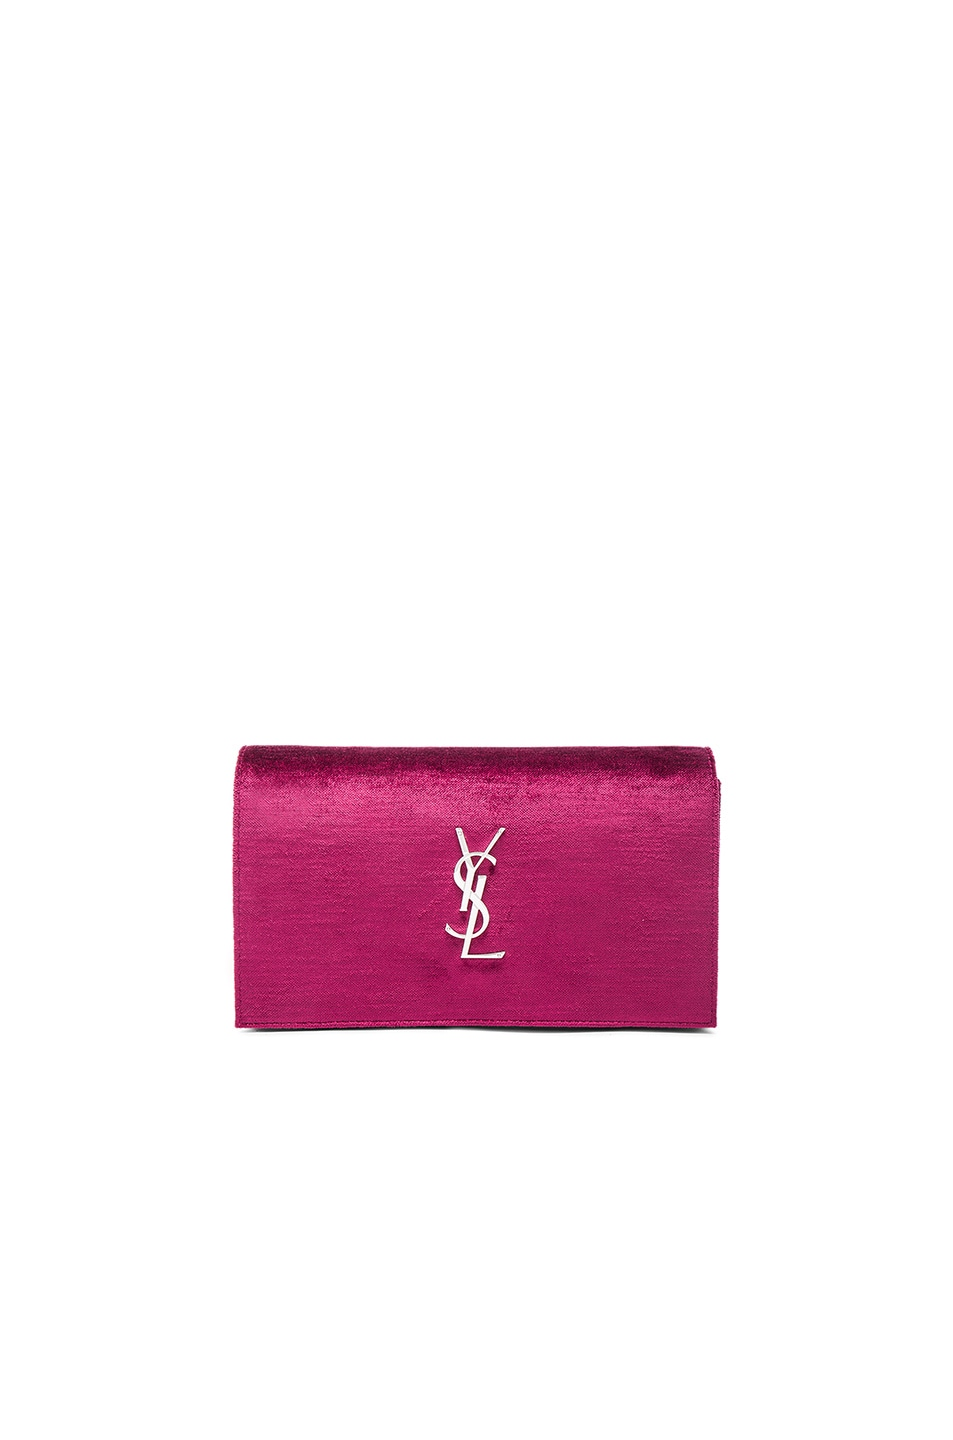 Image 1 of Saint Laurent Monogram Textured Velour Chain Wallet in Black & Rose Wine